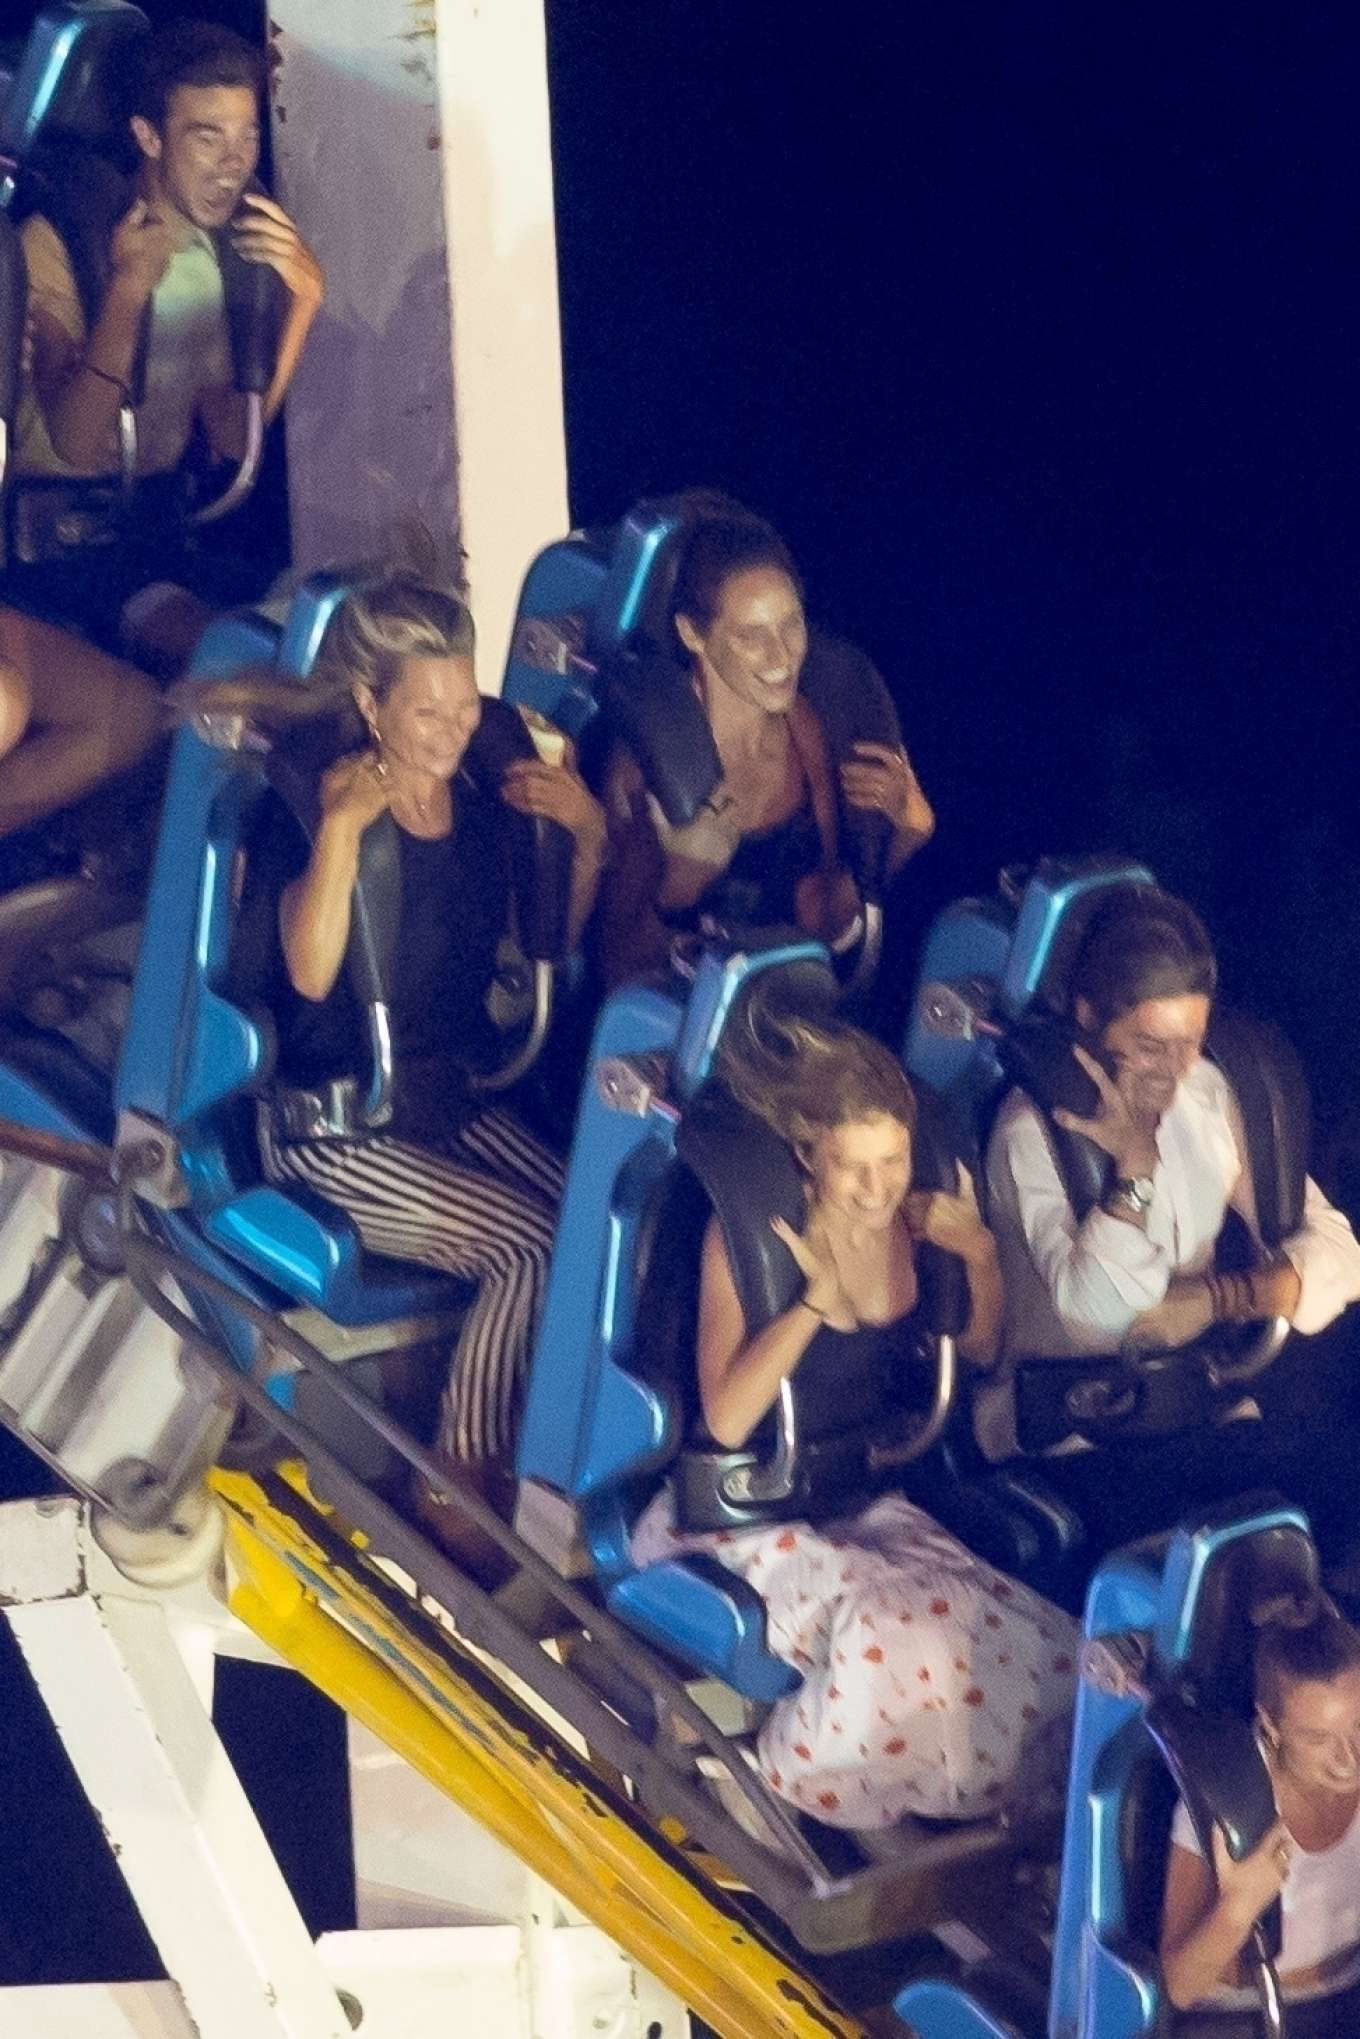 Kate Moss have fun in the amusement park Azur park in Gassin